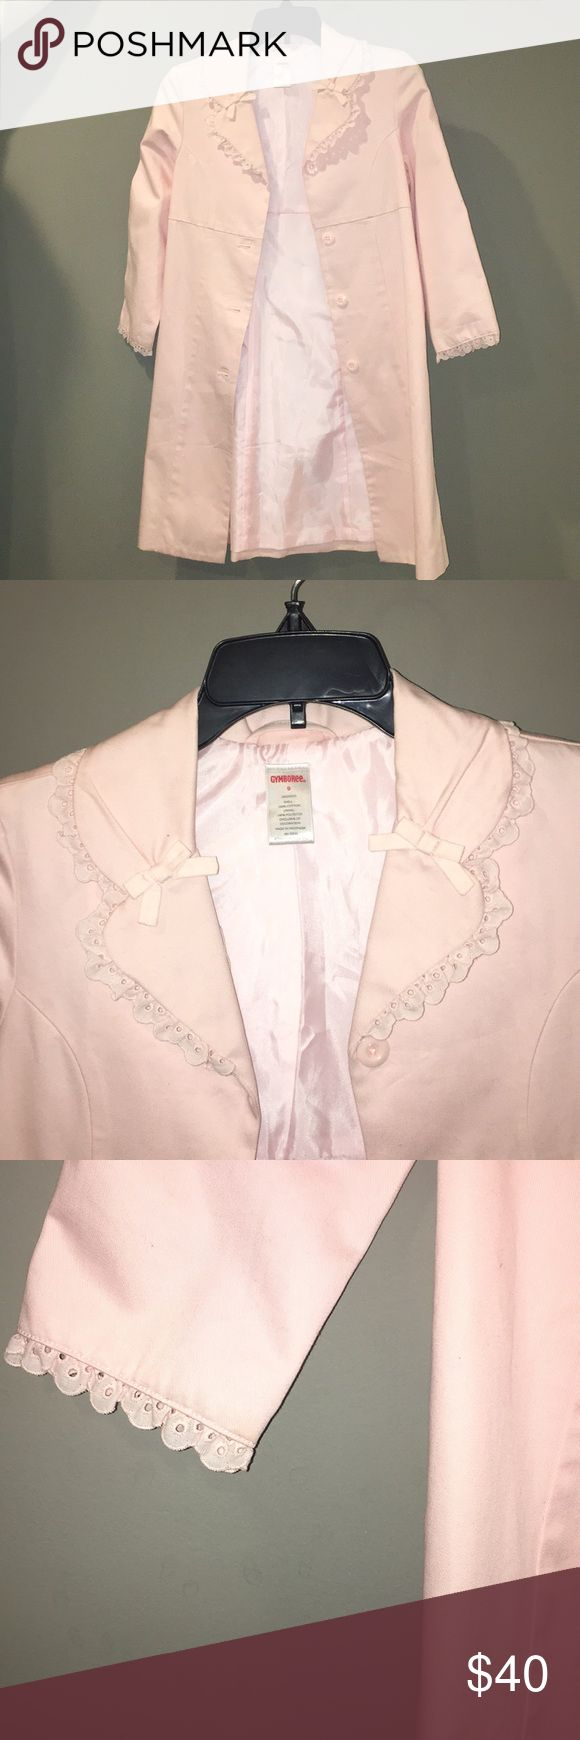 Gymboree Girls Pale Pink Trench Coat Gorgeous girls trench coat with beautiful lace detailing and bows as you may see in the images above. The inside is a comfortable satin material and there are buttons going down the coat. You may find on my closet listings a matching dress for this adorable coat! Gymboree Jackets & Coats